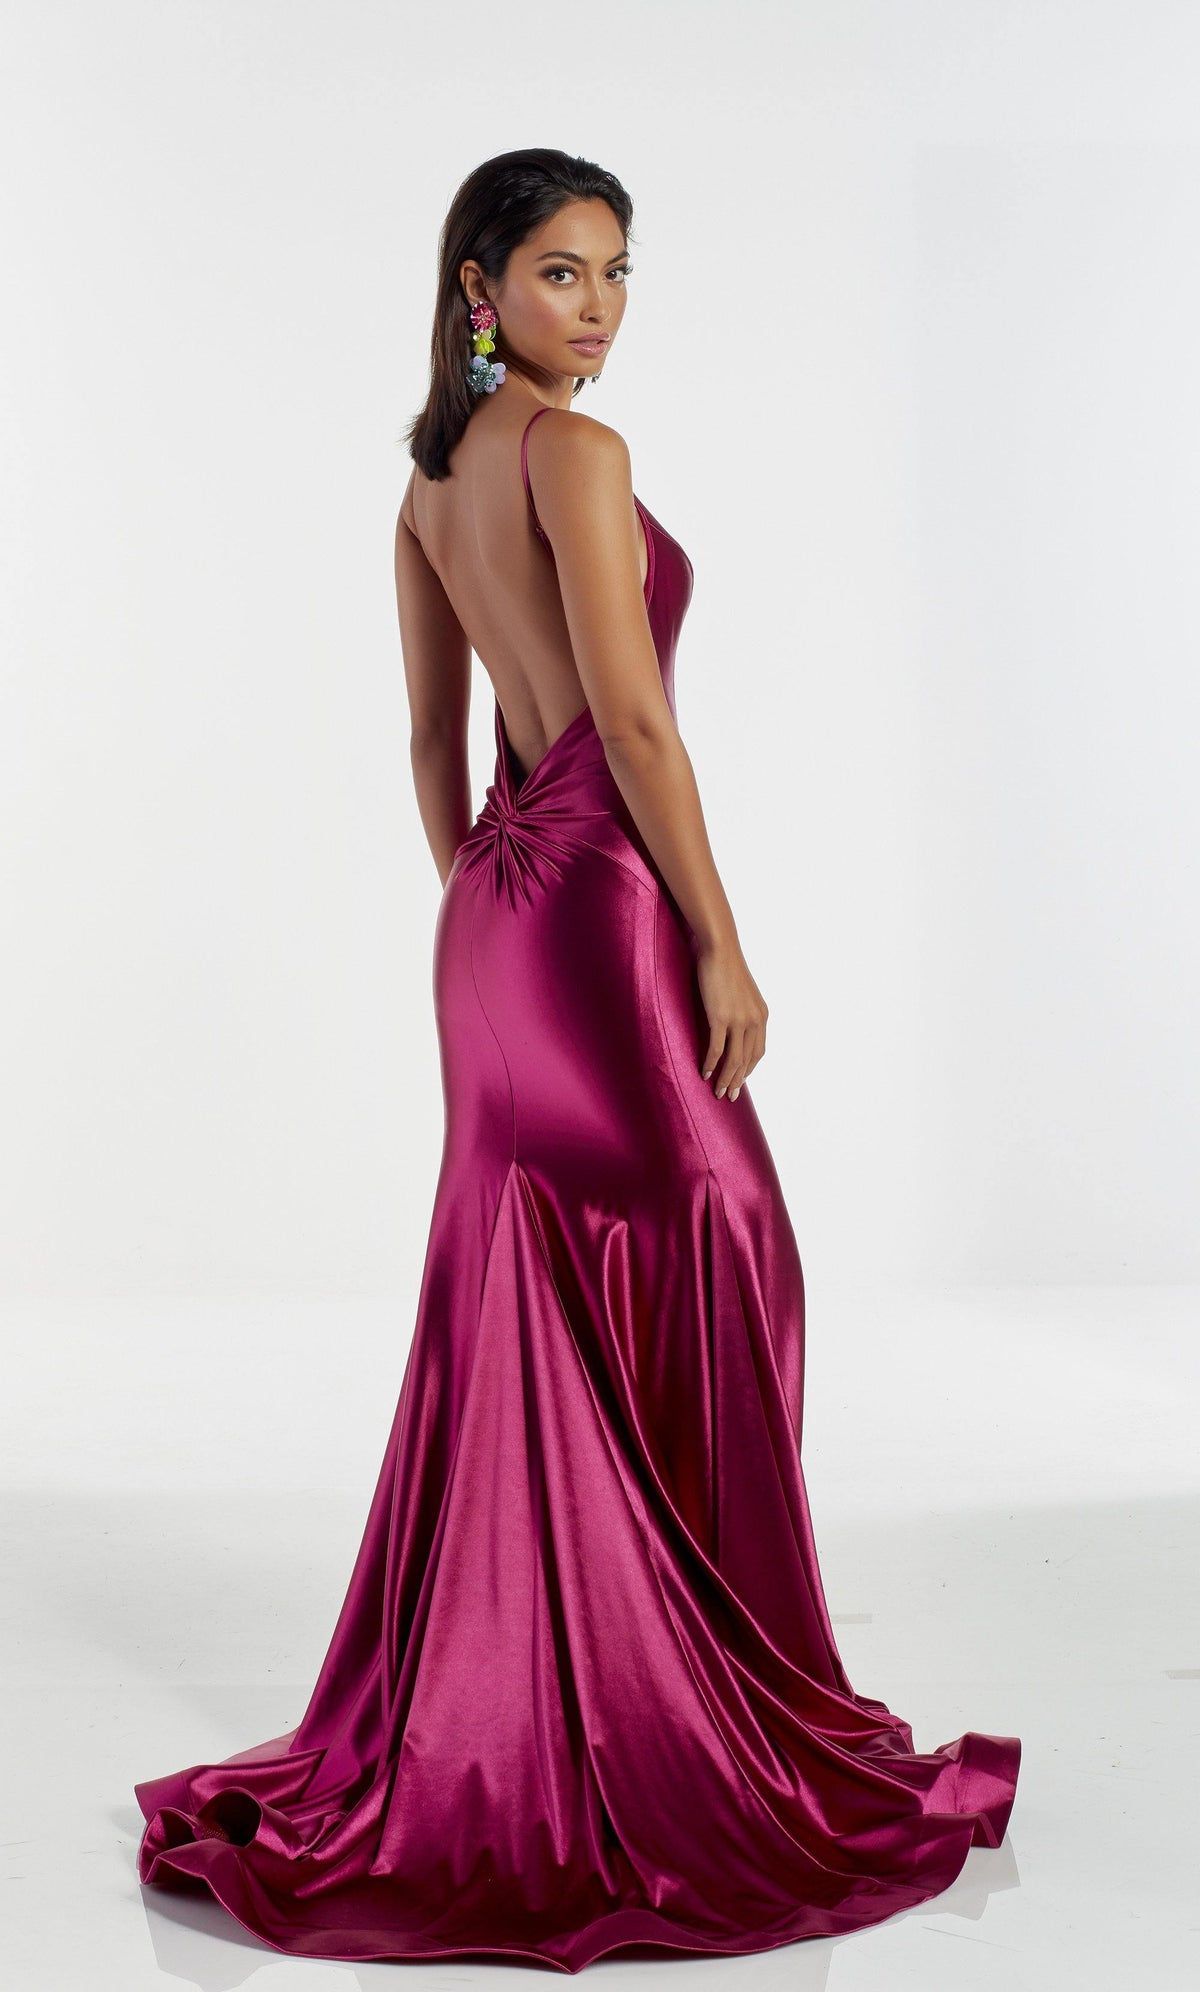 Pink satin evening dress with an open back and train